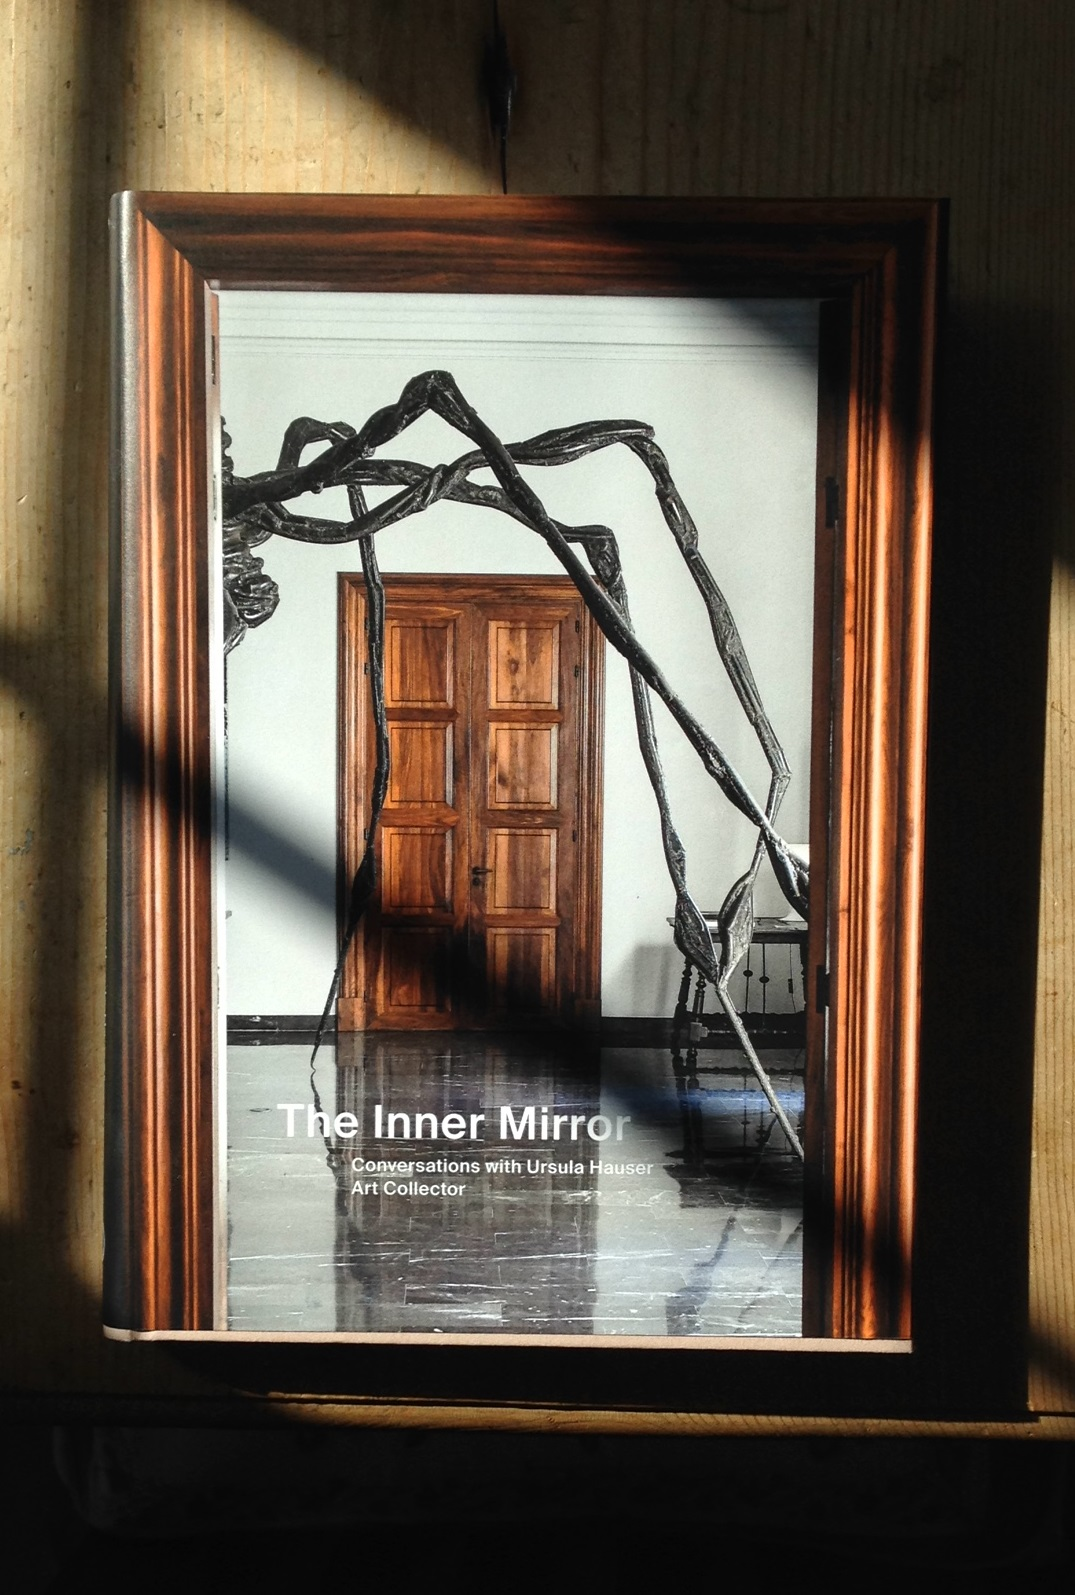 The cover of the book 'The Inner Mirror' catching the light.